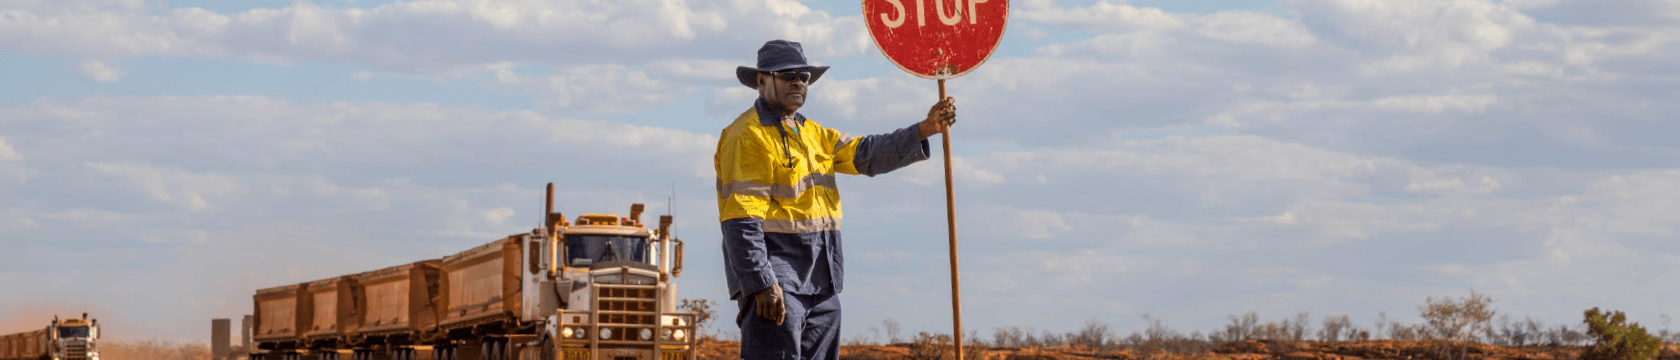 1 male worker outback Australia with stop sign